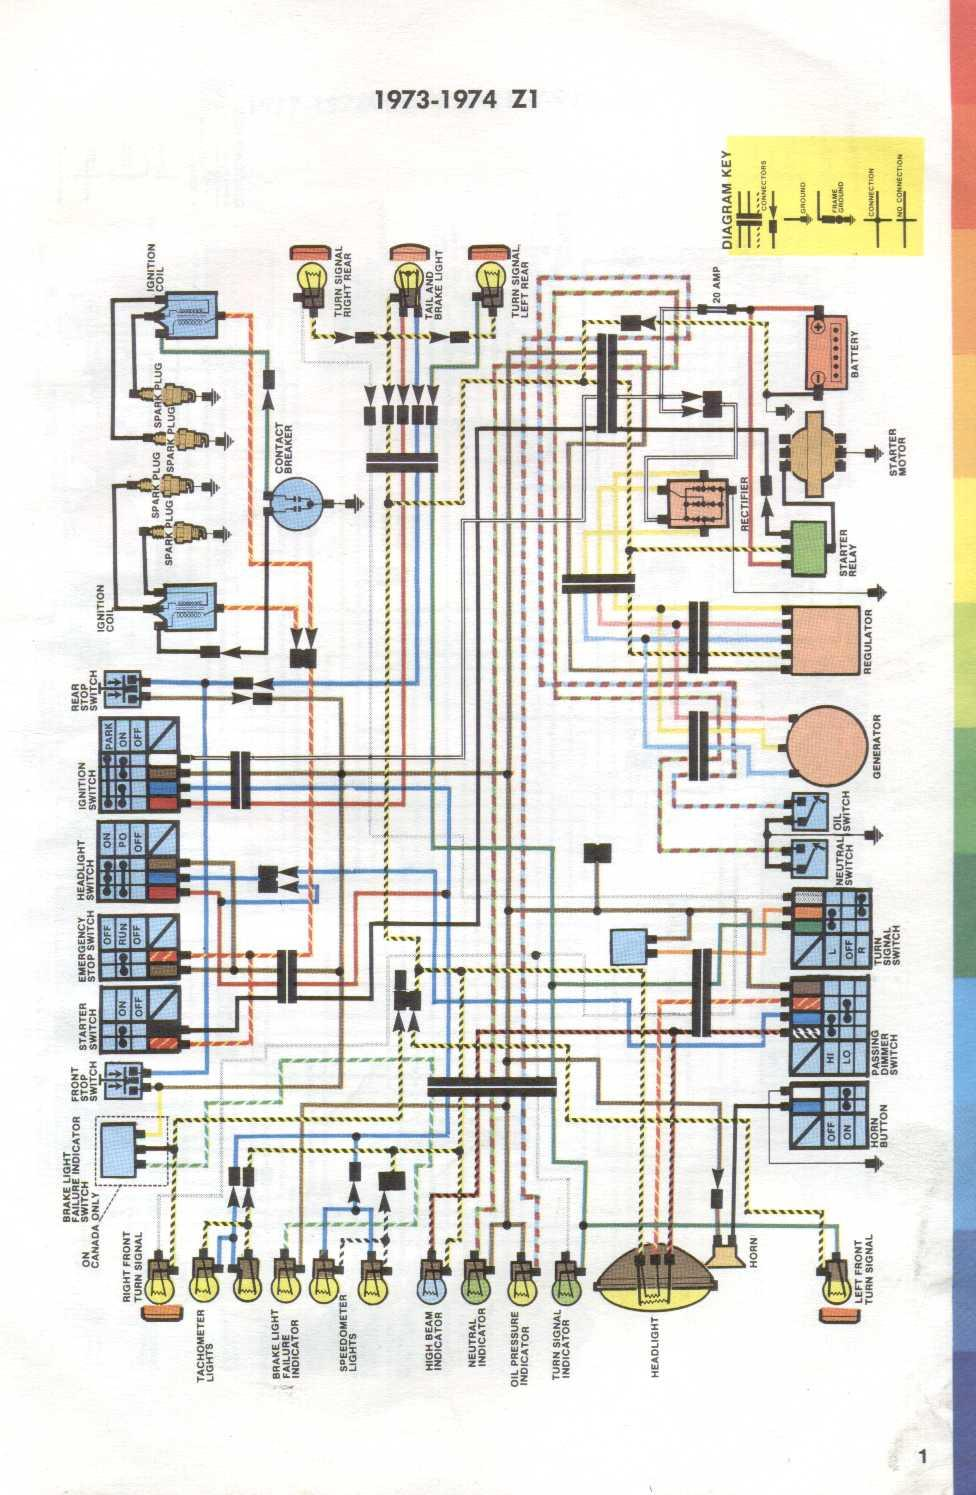 Wiring Diagram For Kawasaki Z1 Diagrams Schema 2006 Z1000 Parts Schematic